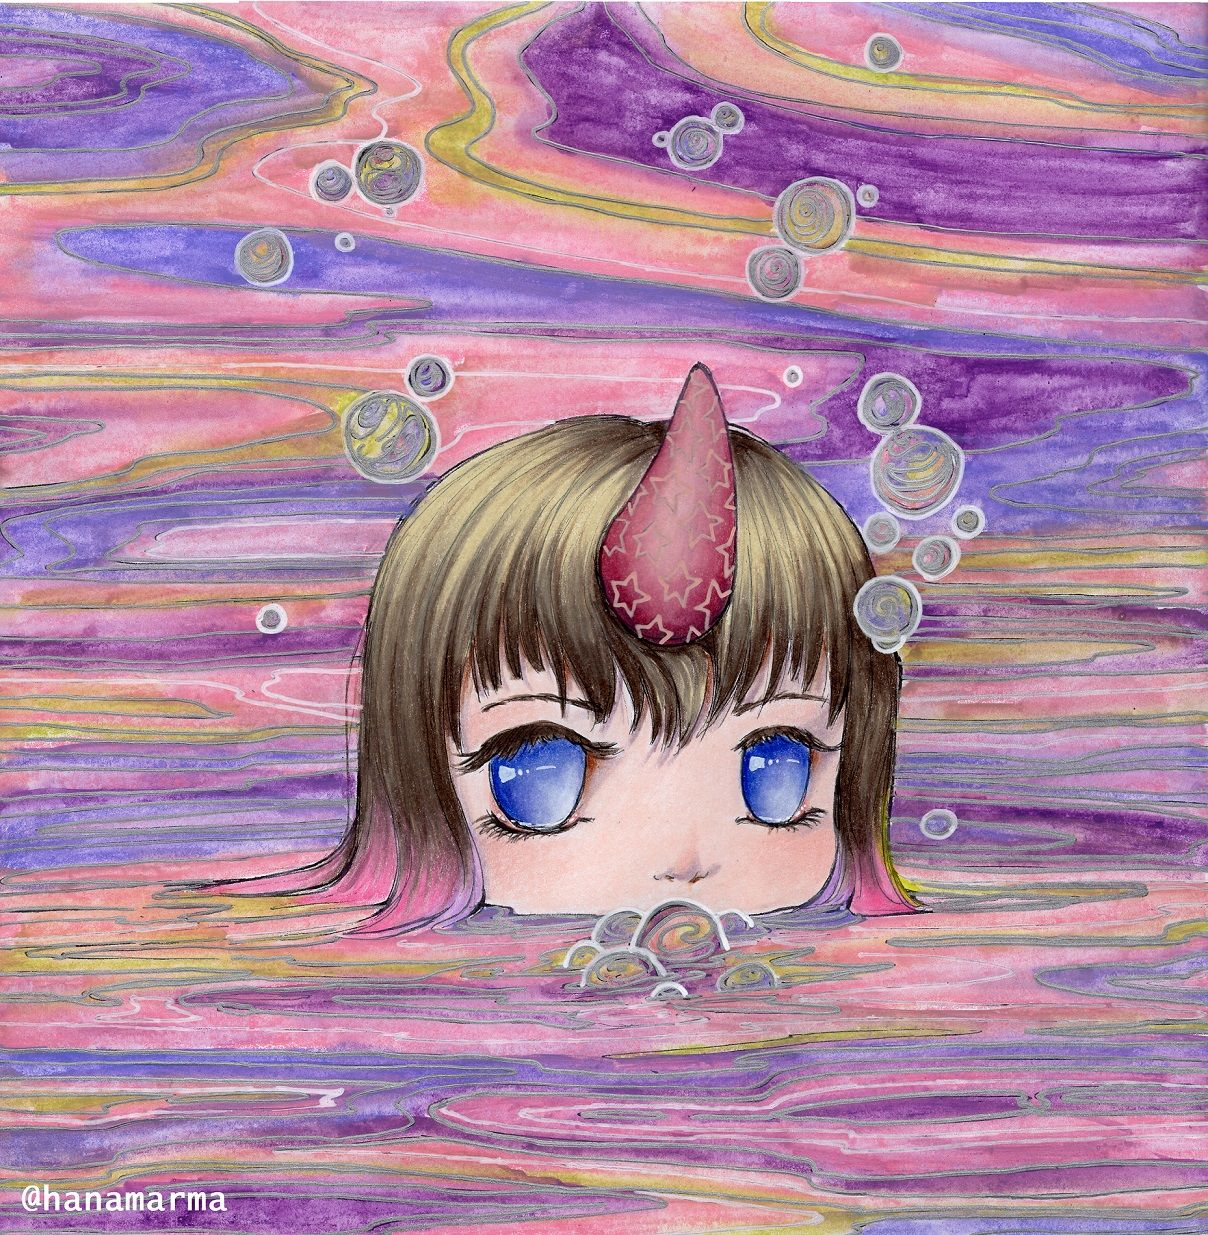 The Narwhal Girl From Pop Manga Coloring Book By Camilla D Errico Colored By Hanamarma Manga Coloring Book Mermaid Coloring Book Coloring Books